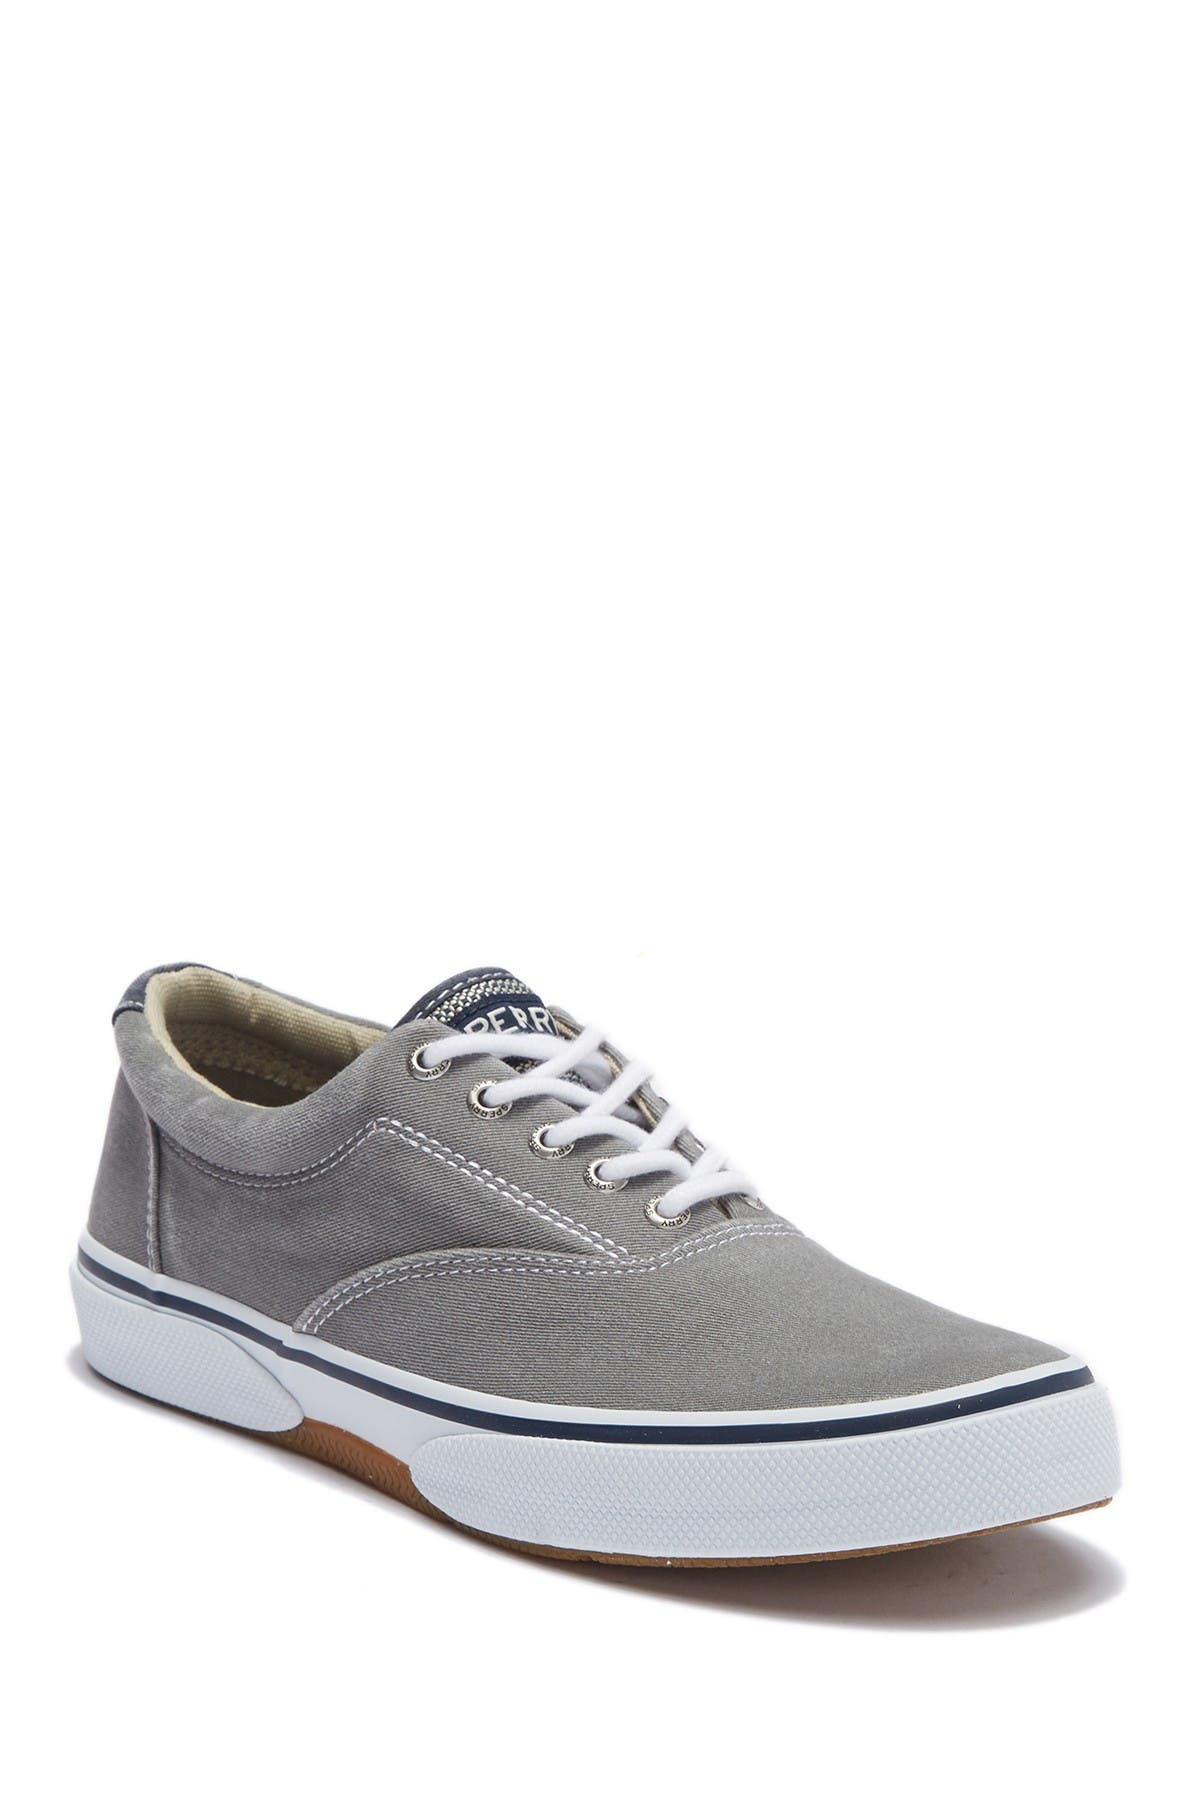 Sperry | Halyard Lace-Up Sneaker - Wide